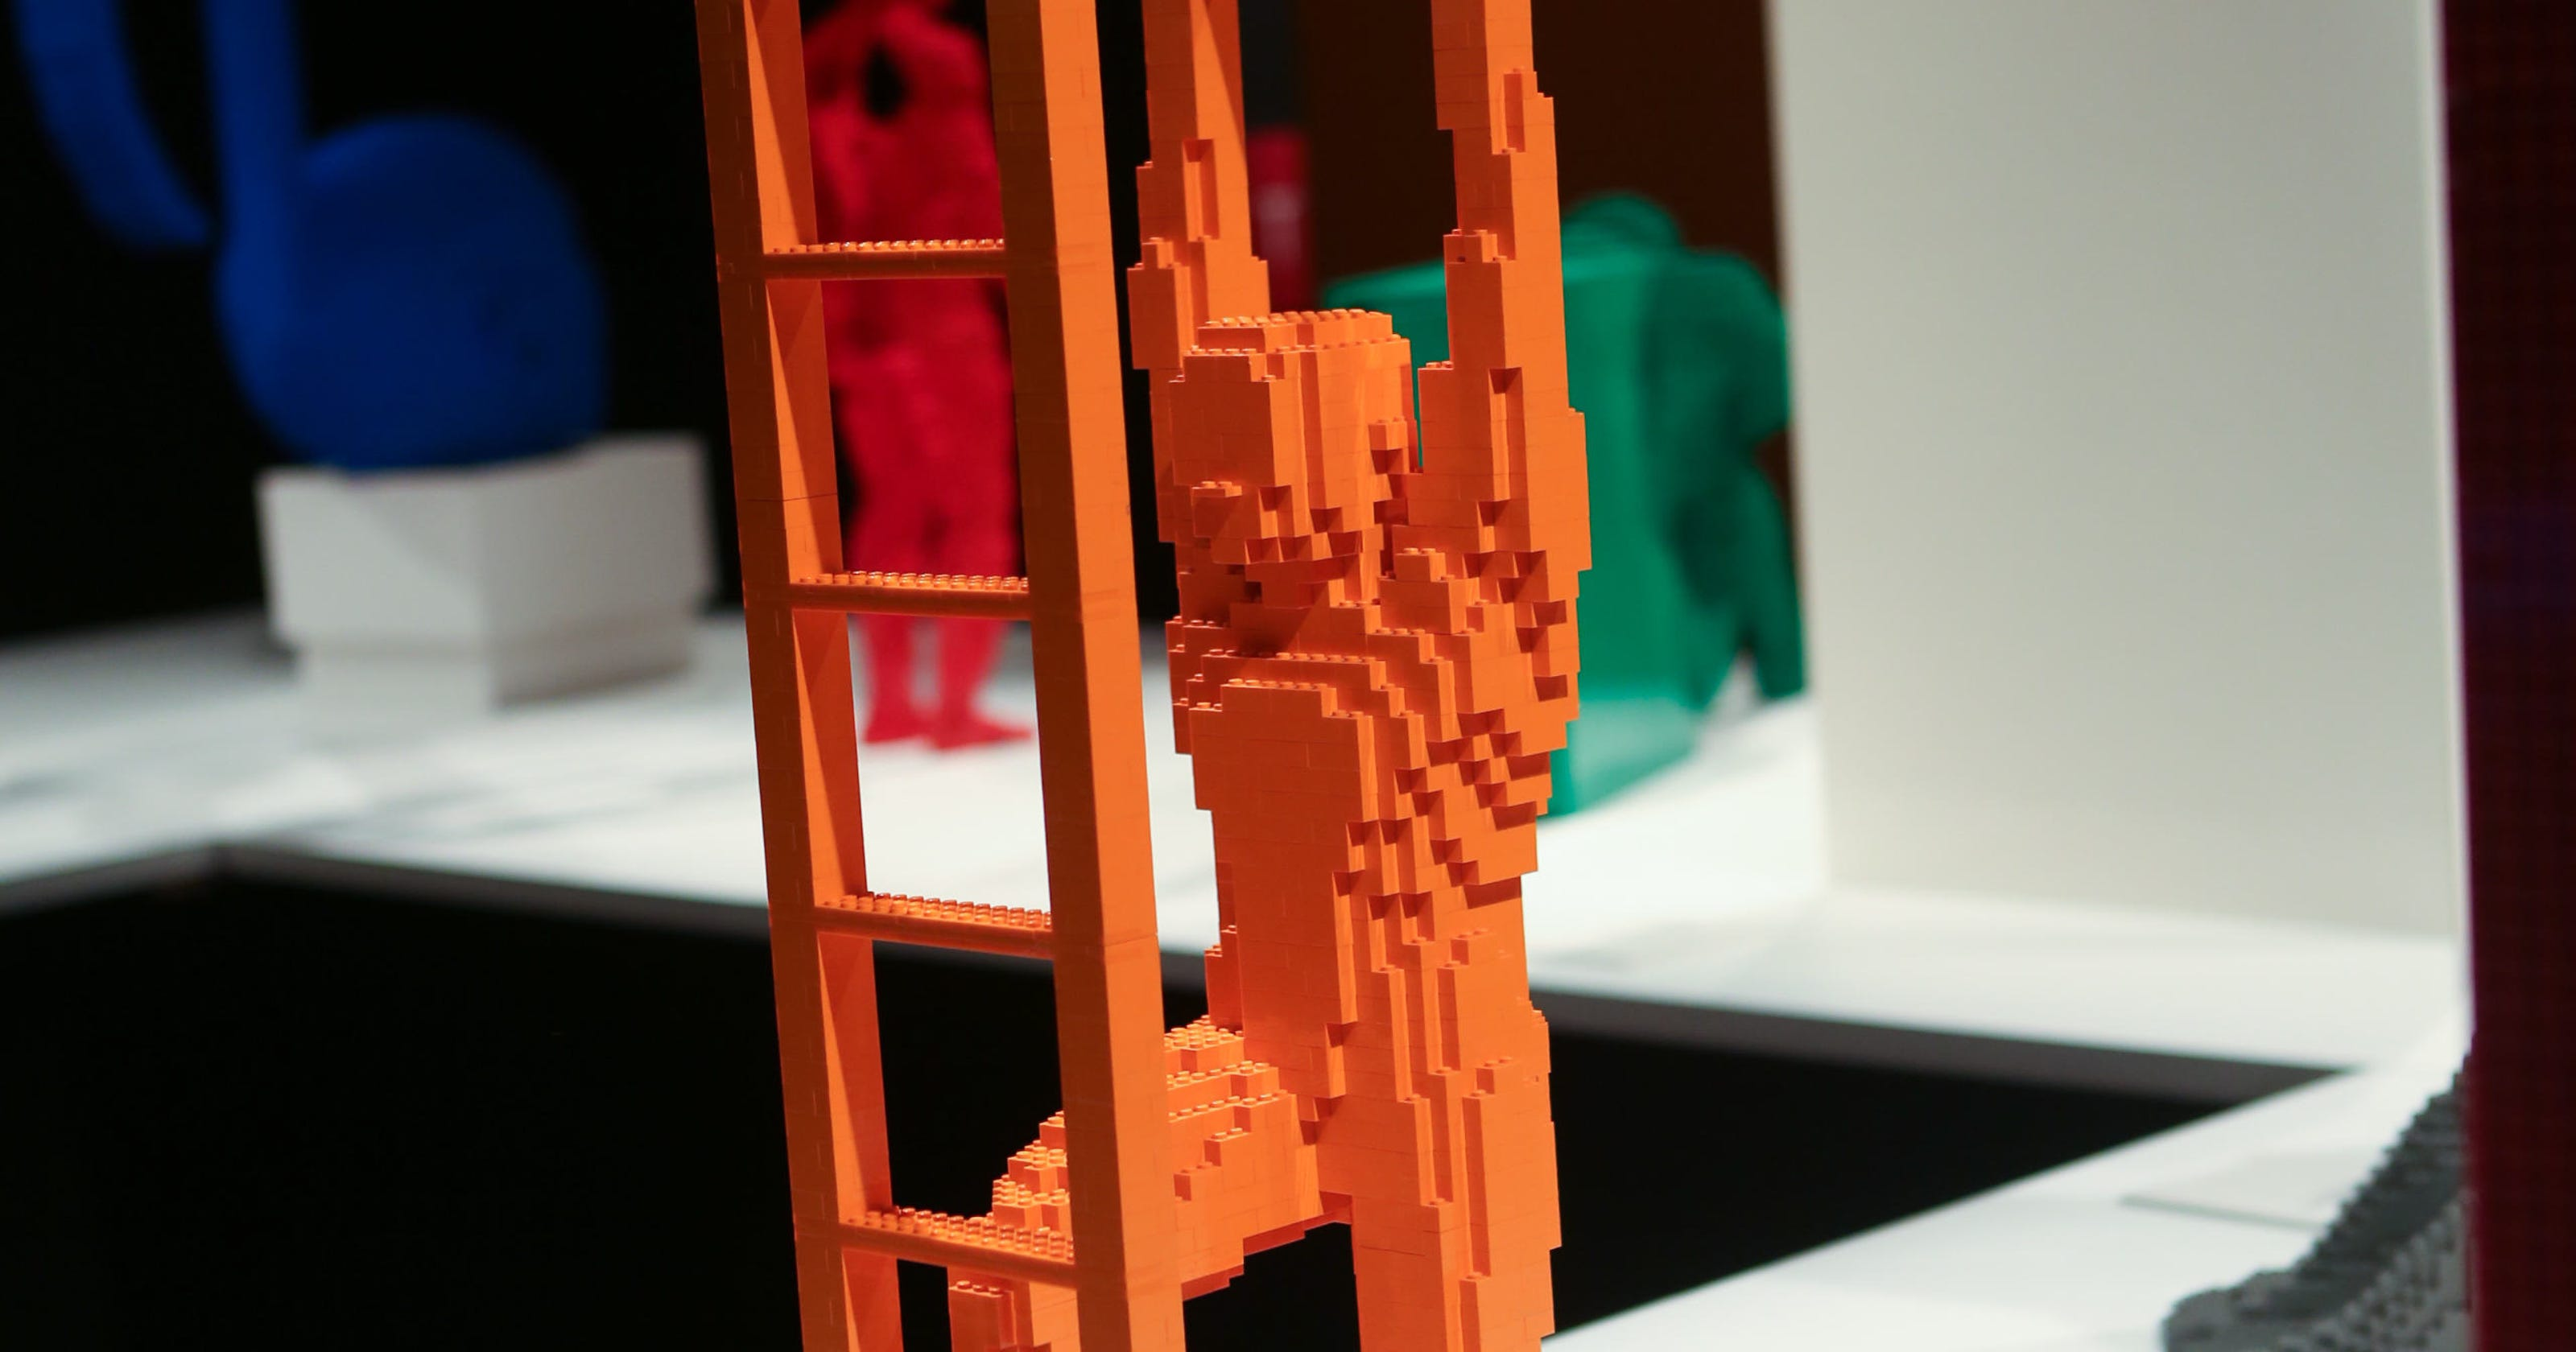 Franklin Institute: World's largest display of LEGO art